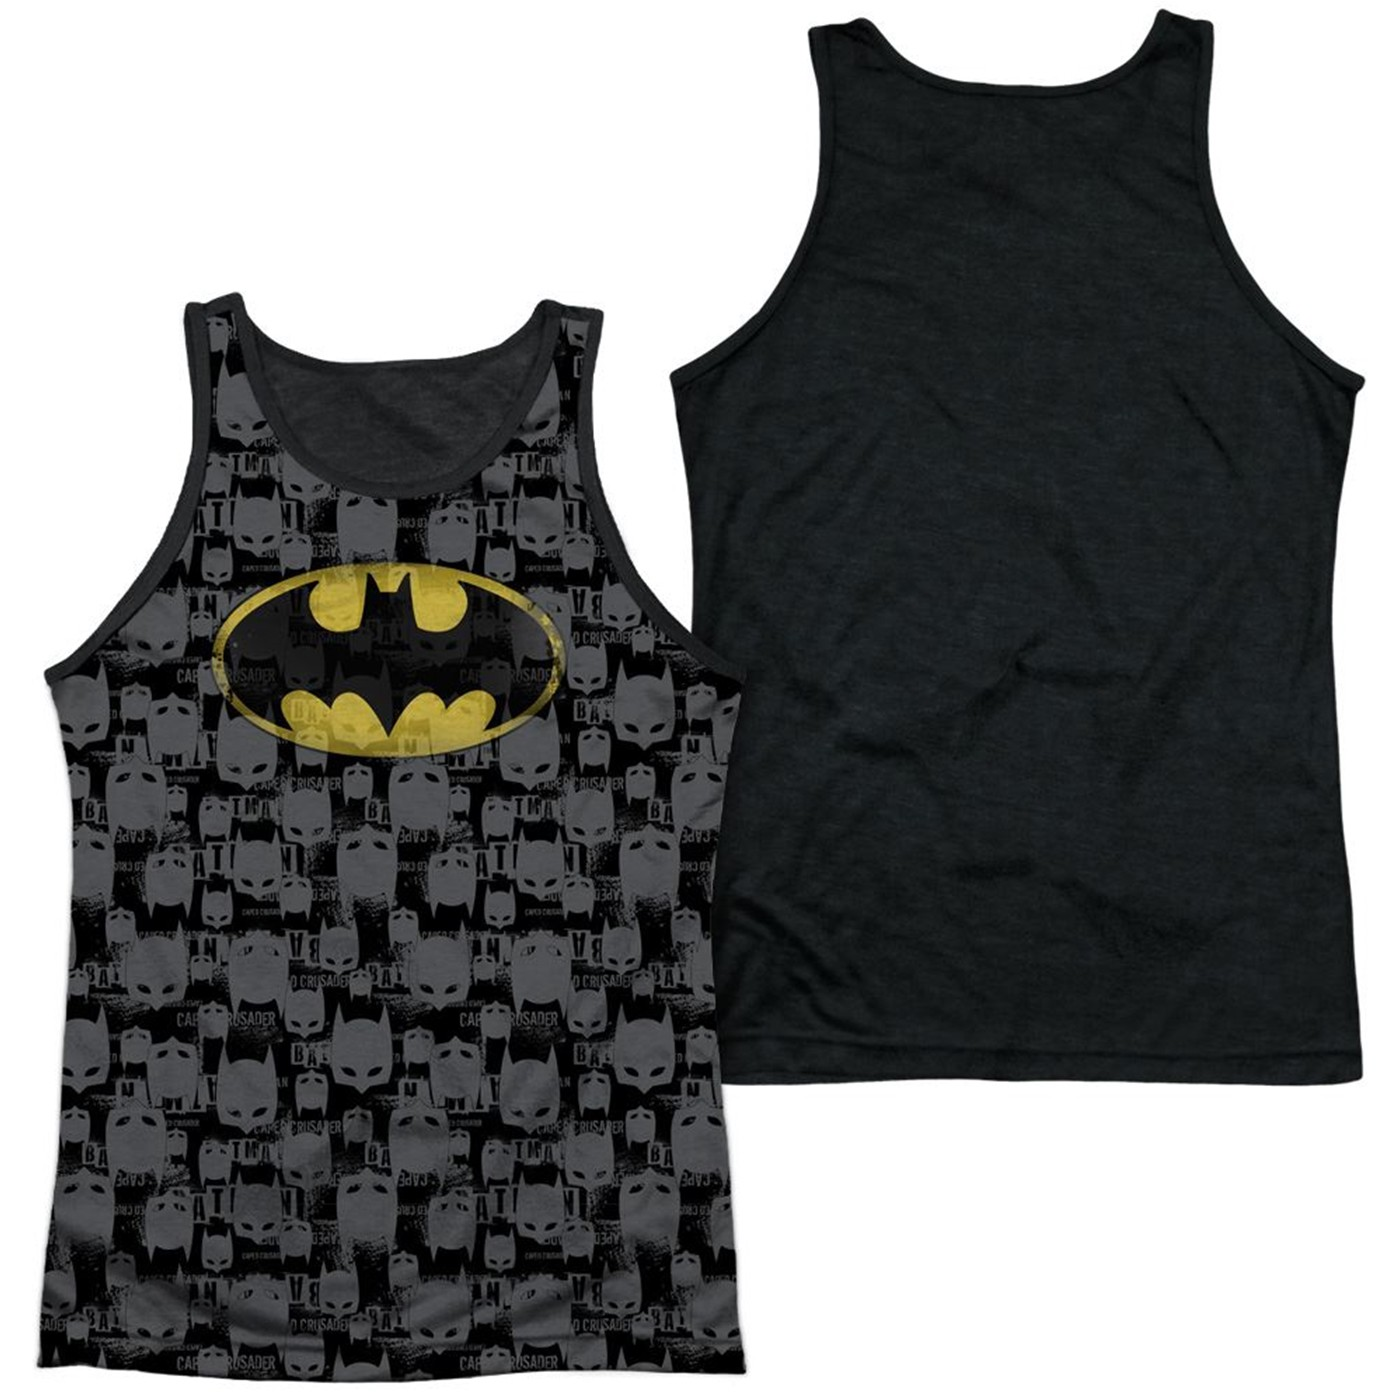 Caped Crusader Repeat Batman Sublimated Tank Top